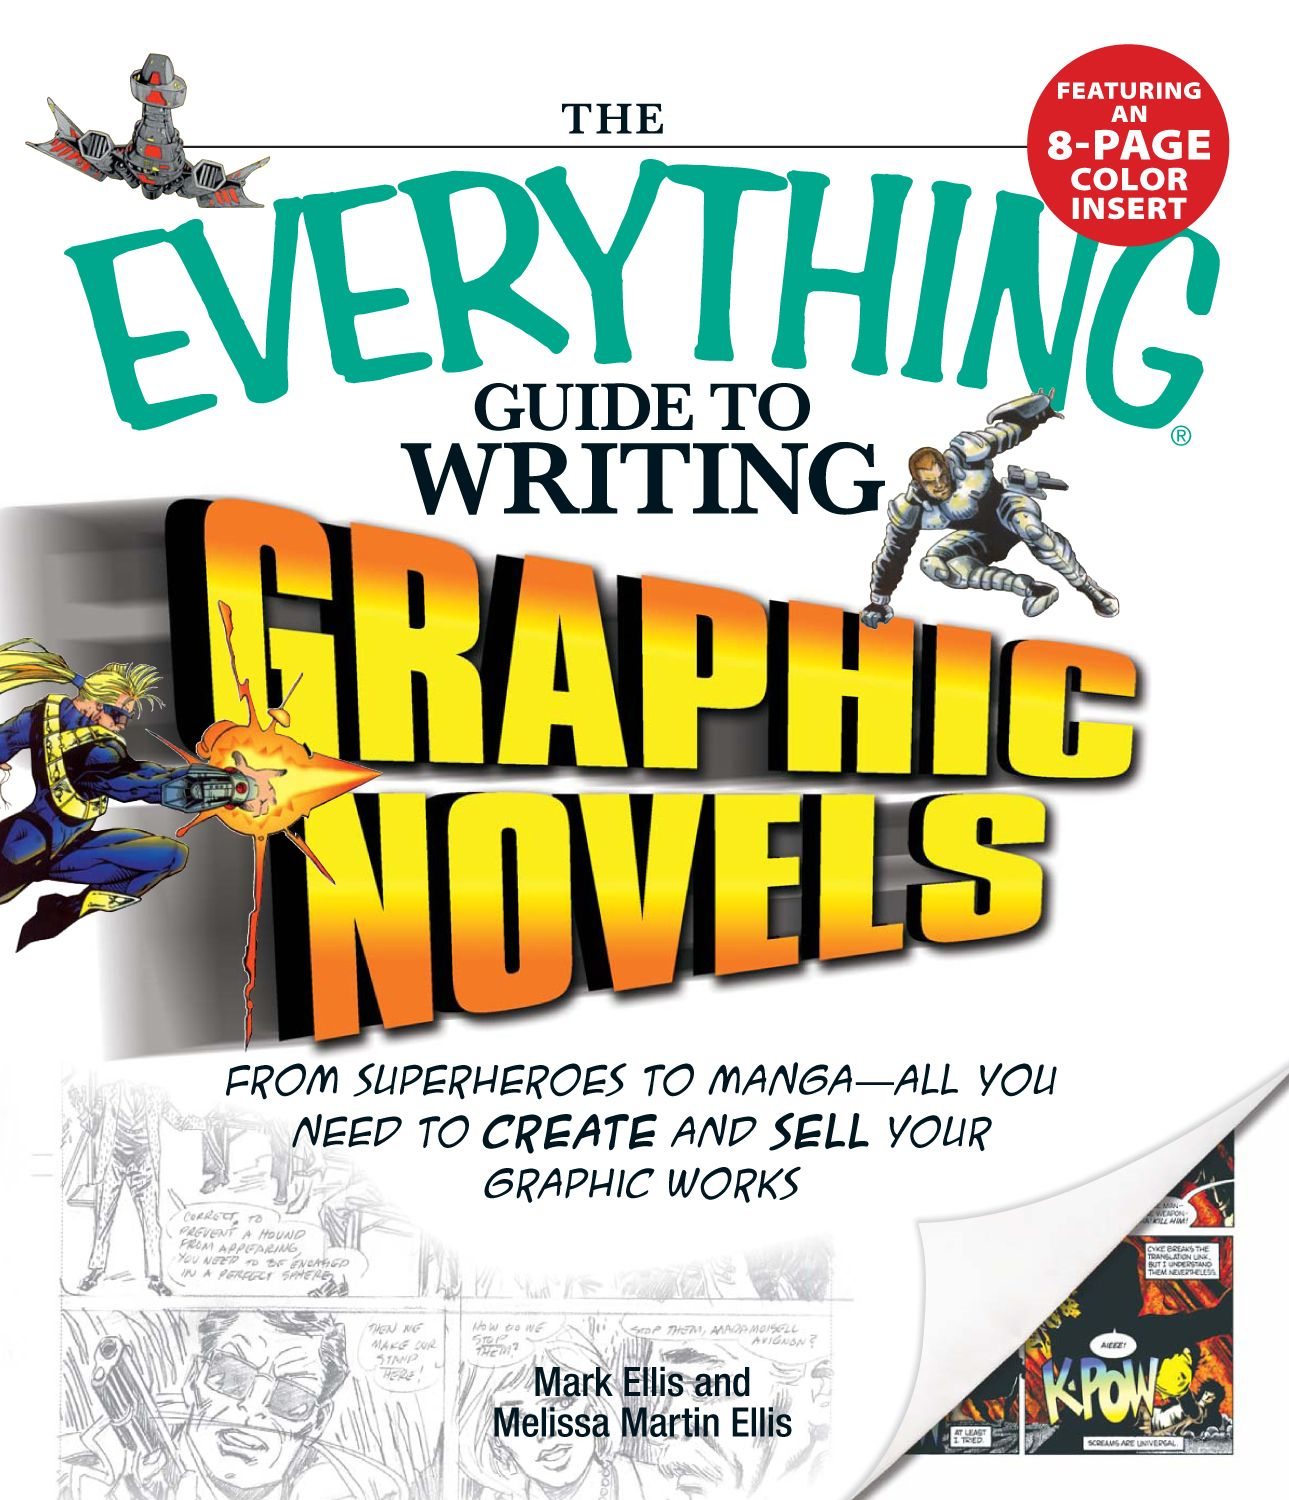 Everything Guide to Writing Graphic Novels: From superheroes to manga—all you need to start creating your own graphic works